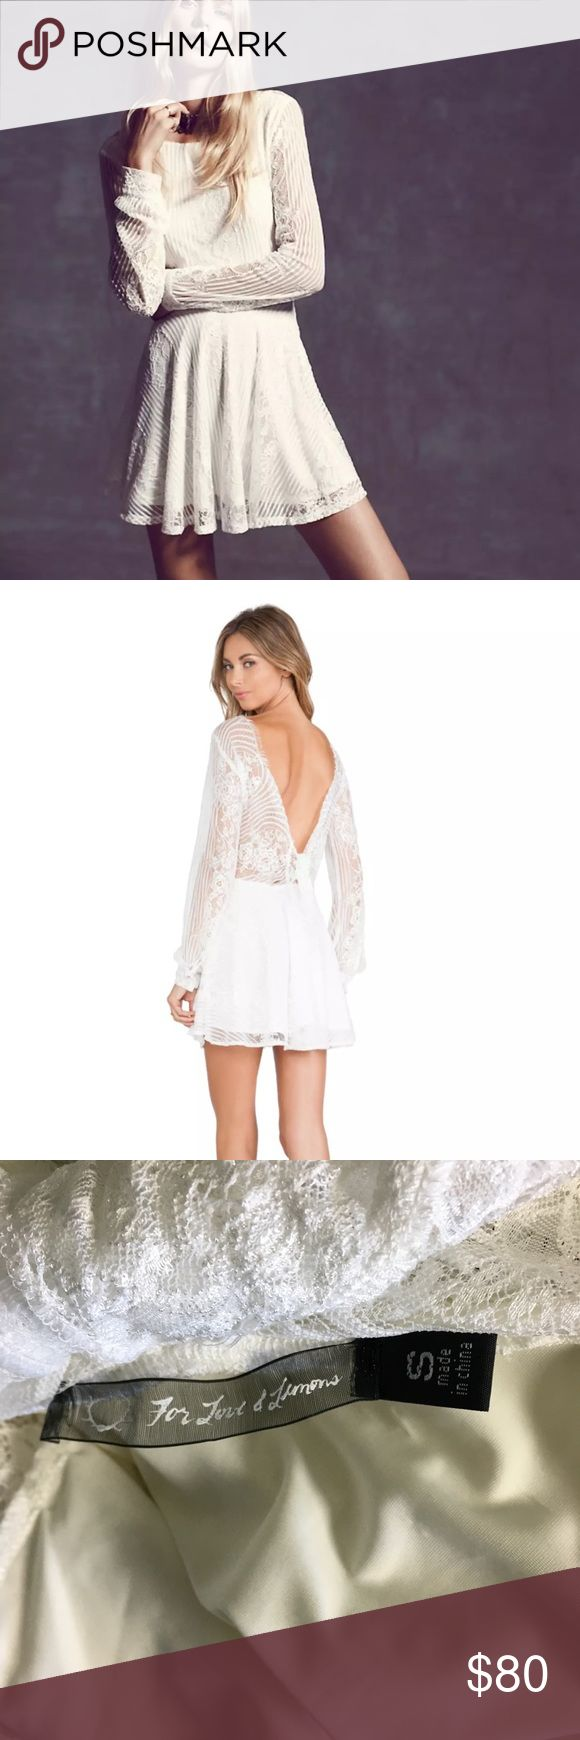 "For Love And Lemons Lolo Lace Fit Flare Dress Name Brand: For Love And Lemons  Condition: Pre Owned, Excellent condition light wear, no holes, stains or flaws to note  Size: Small (see measurements)  Color: White  Style: Lolo Dress  Material: Nylon Rayon Blend  Always check the measurements, label sizes are not consistent.   Measurements are approximate, and are of item laying flat and unstreched: Waist: 15"" Length: 34 "" Bust:19"" Sleeve: 21.5"" For Love And Lemons Dresses"